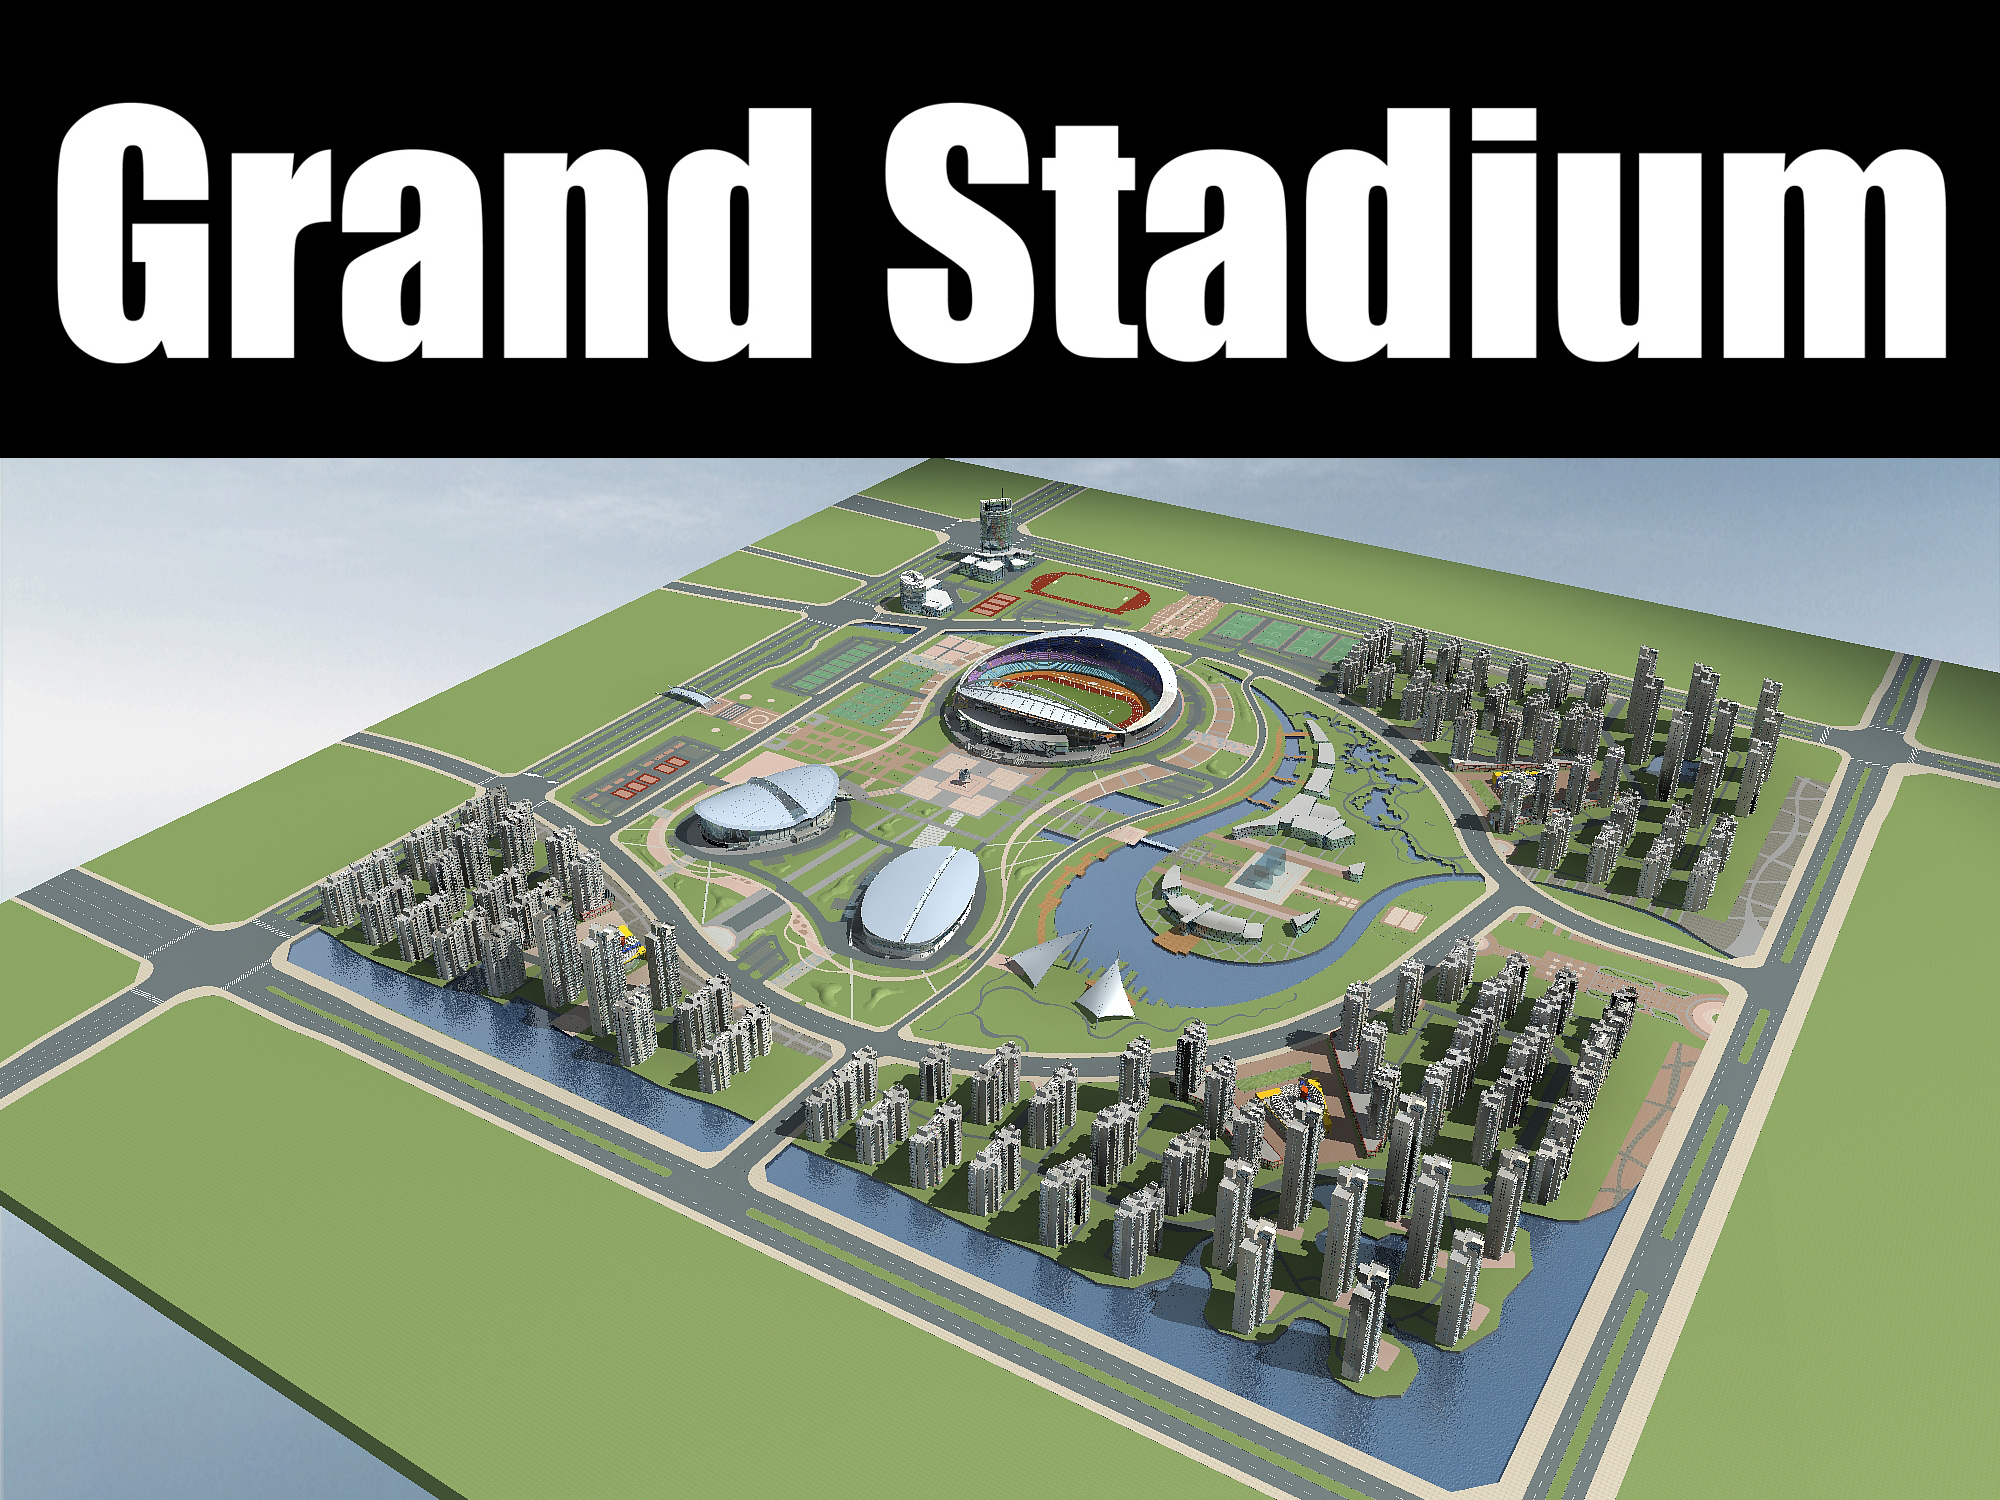 grand stadium 005 3d model 3ds max obj 98327